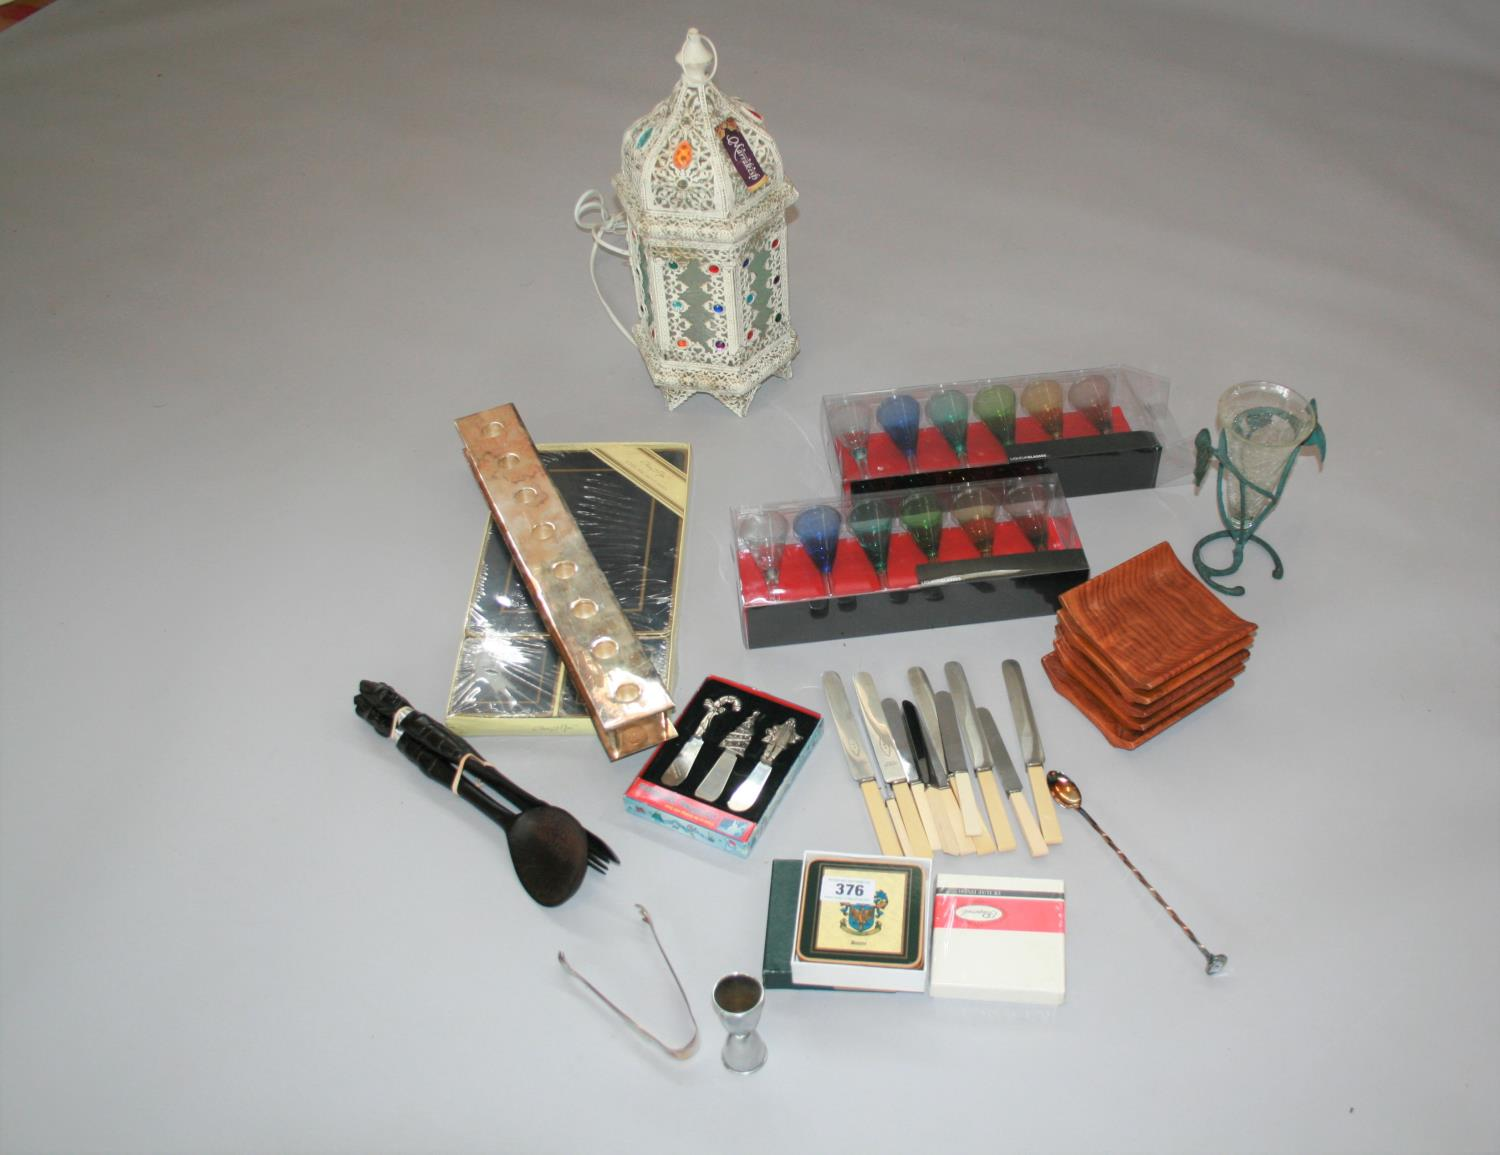 Collection of miscellaneous items including liquor glasses and table setting and electric lantern.